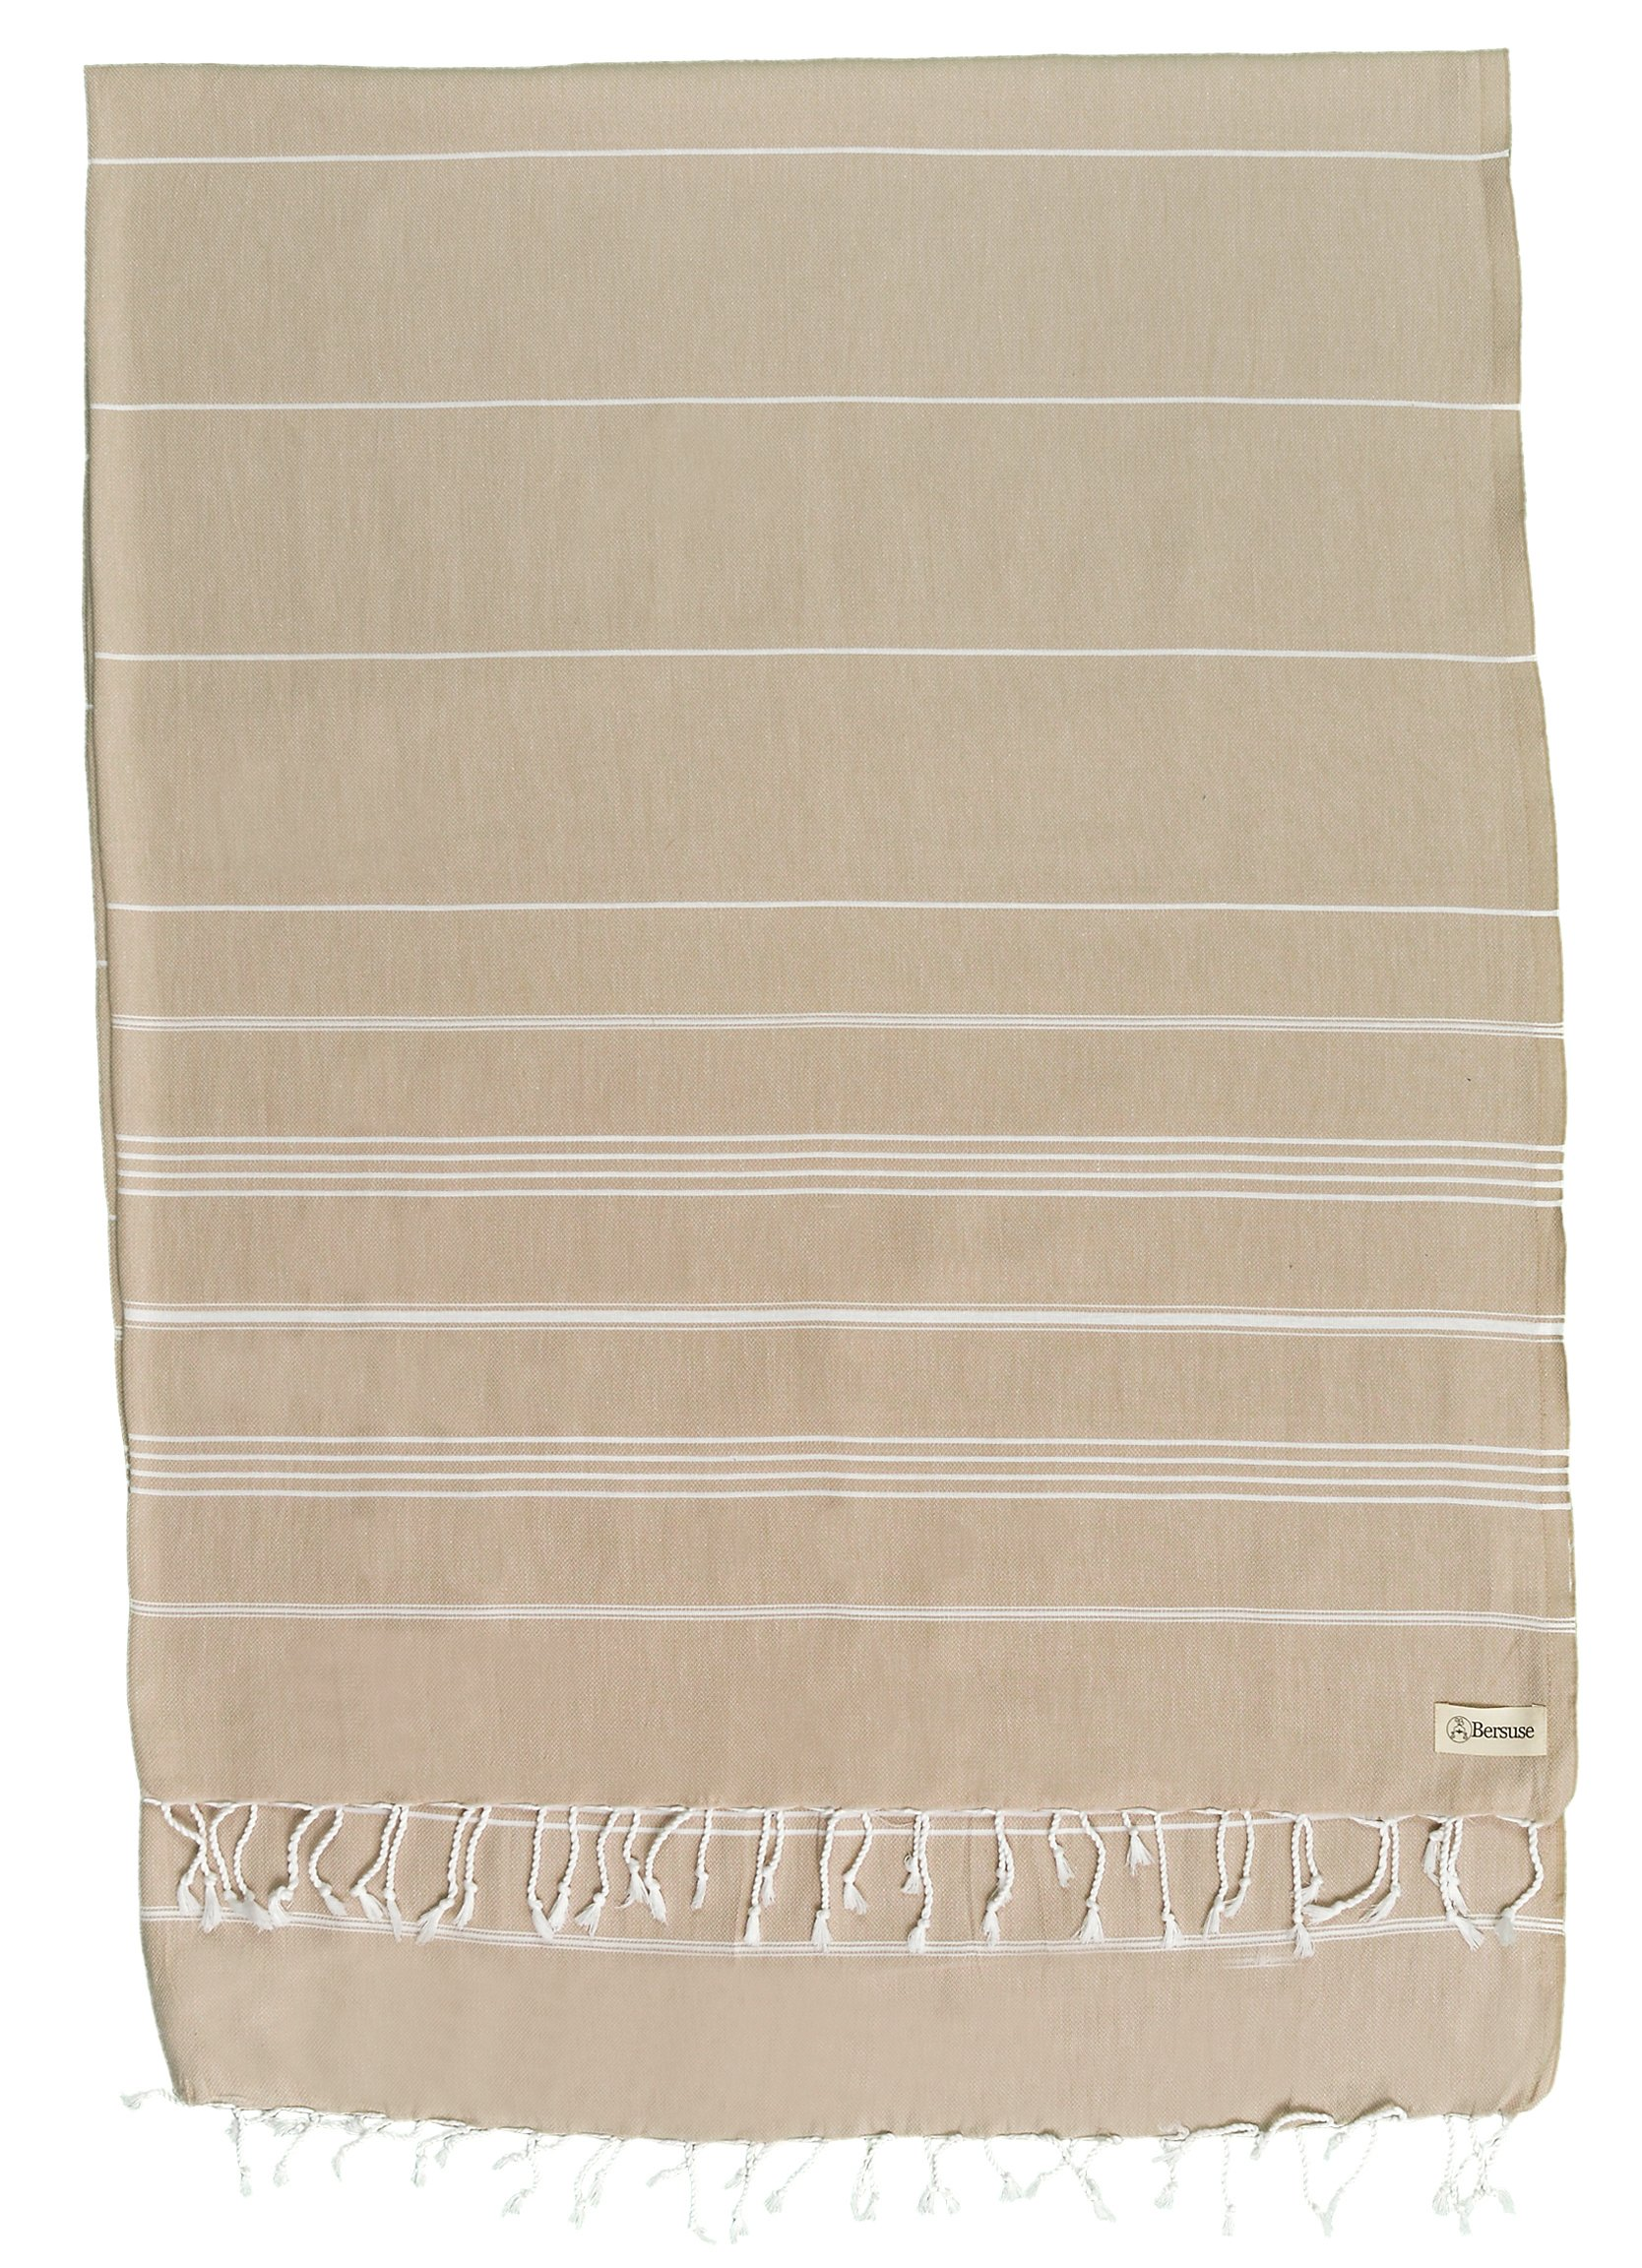 Bersuse 100% Cotton - Anatolia XL Blanket Turkish Towel - Bath Beach Fouta Peshtemal - Multipurpose Bed or Couch Throw, Table Cover or Picnic Mat - Striped - 61X82 Inches, Beige (Set of 6)